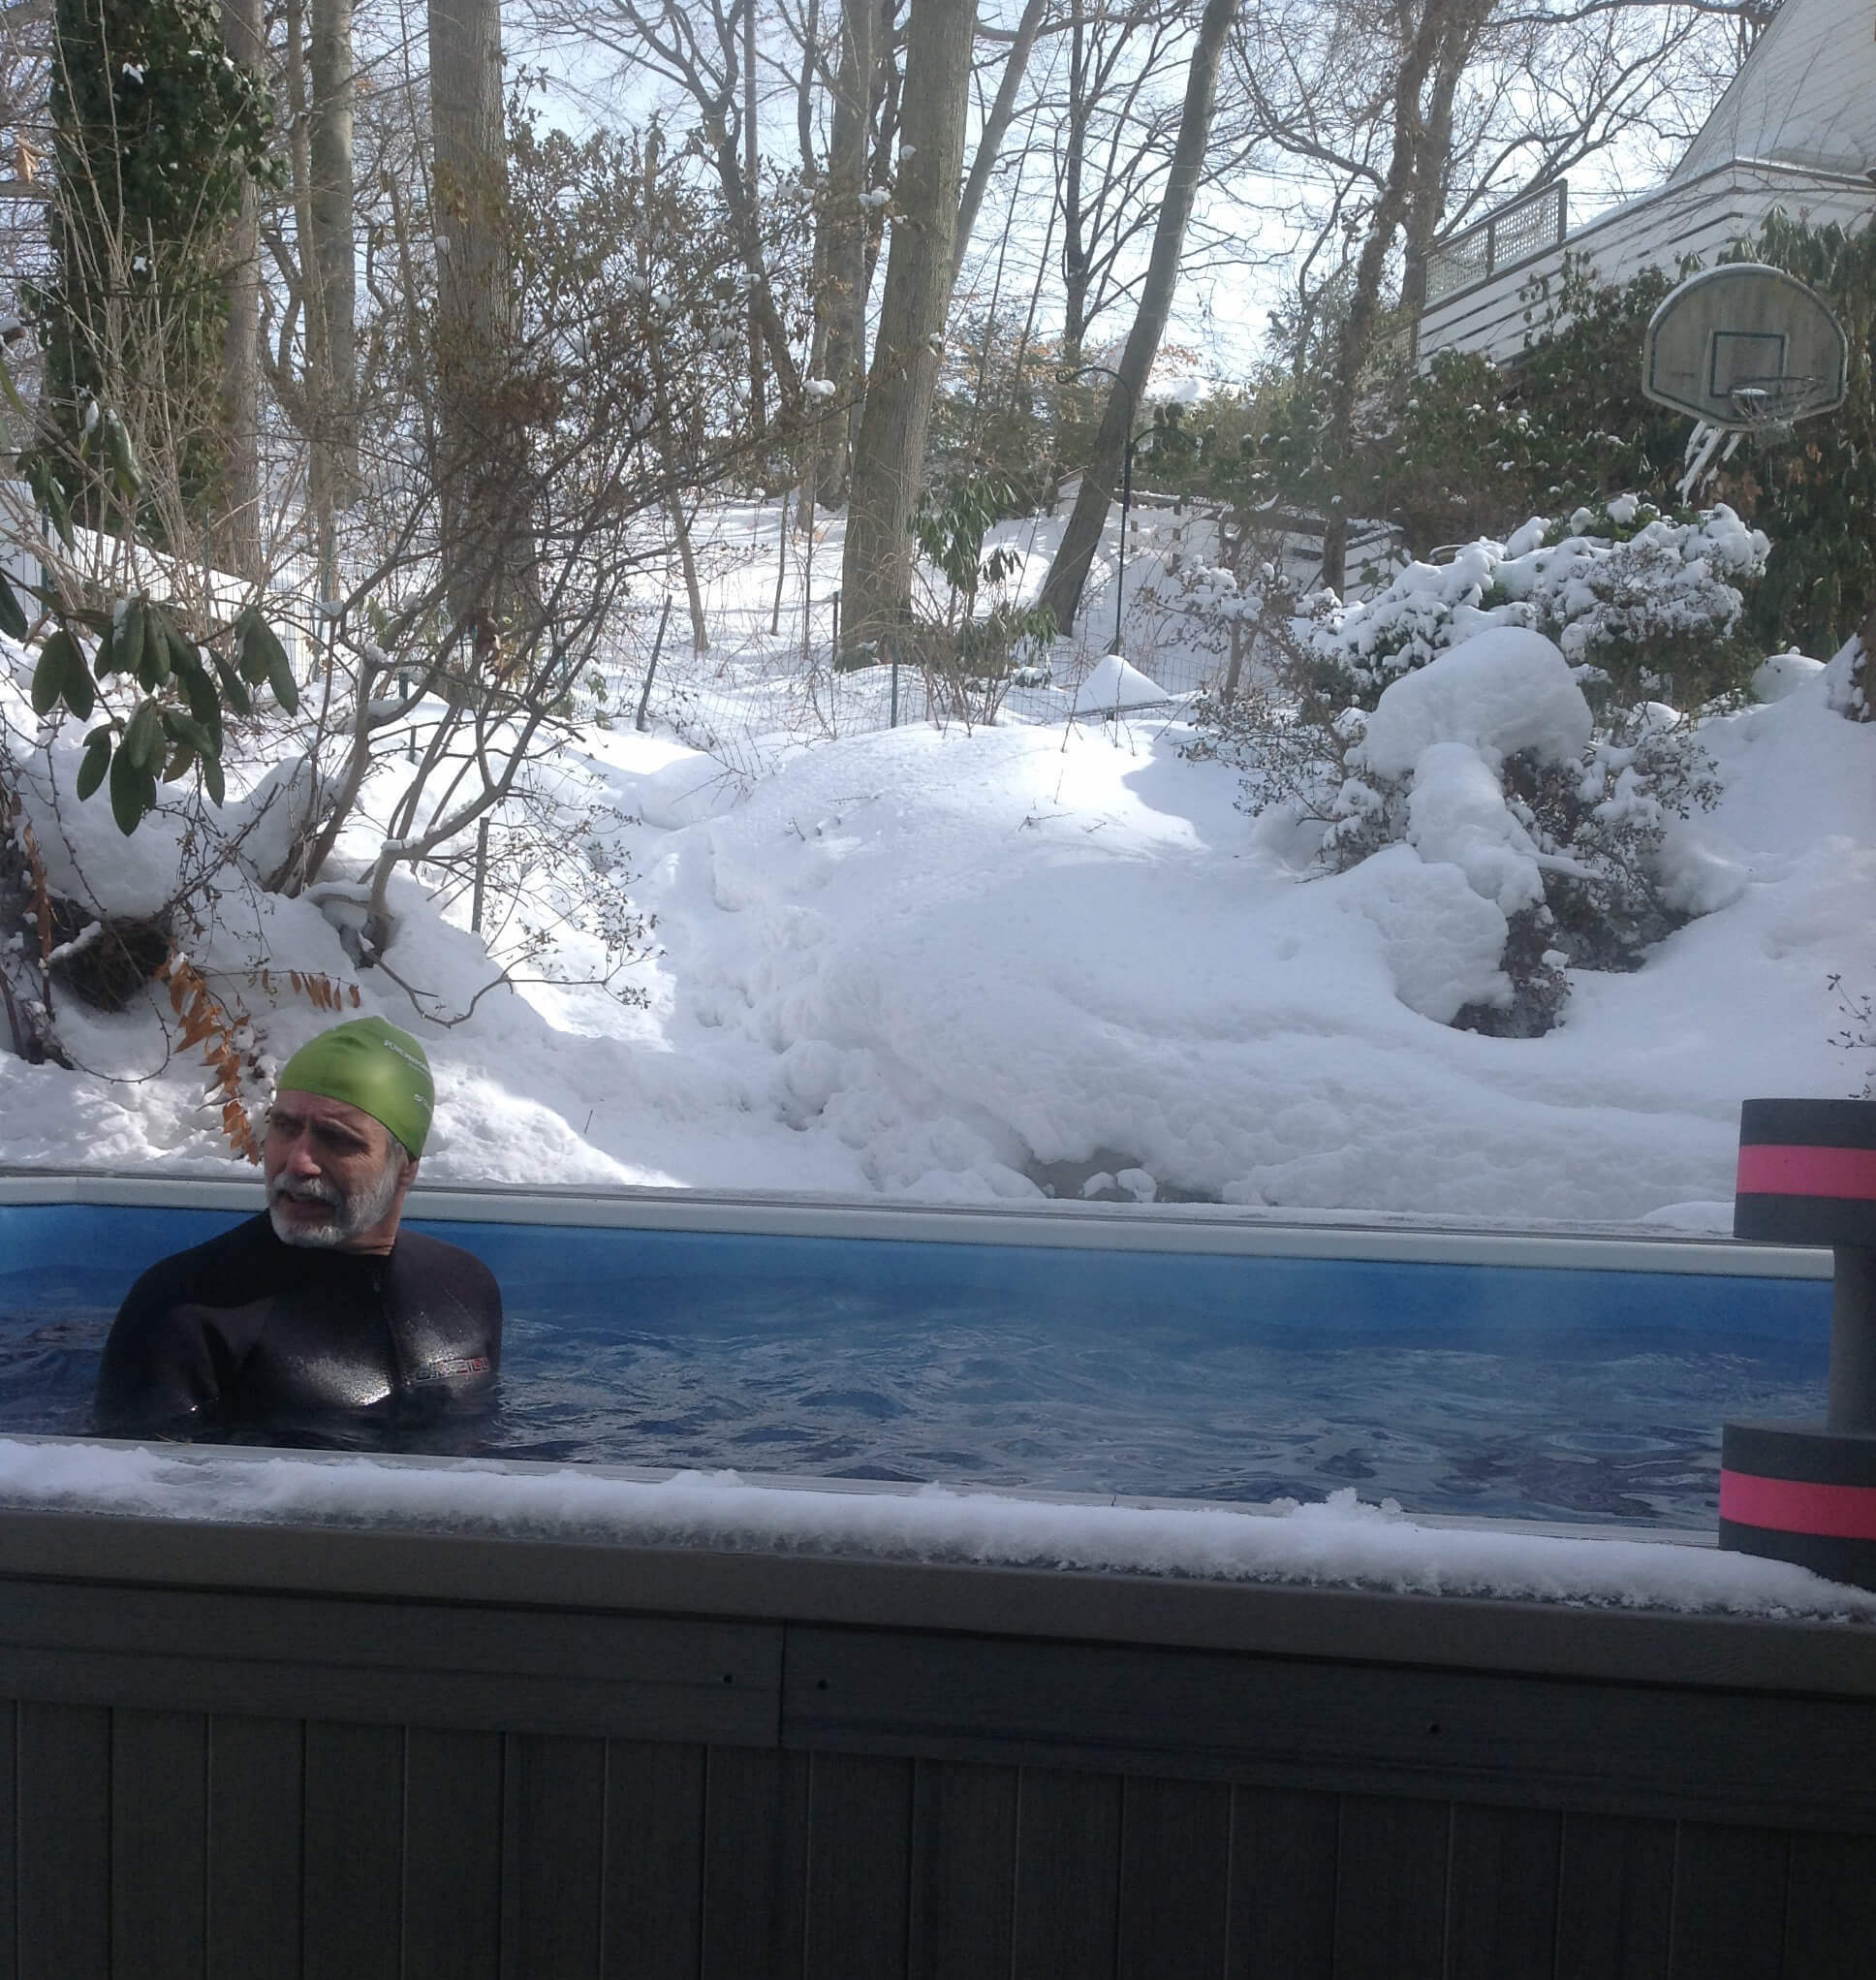 A swimmer in a wetsuit in the Endless Pools swimming machine after snowfall.